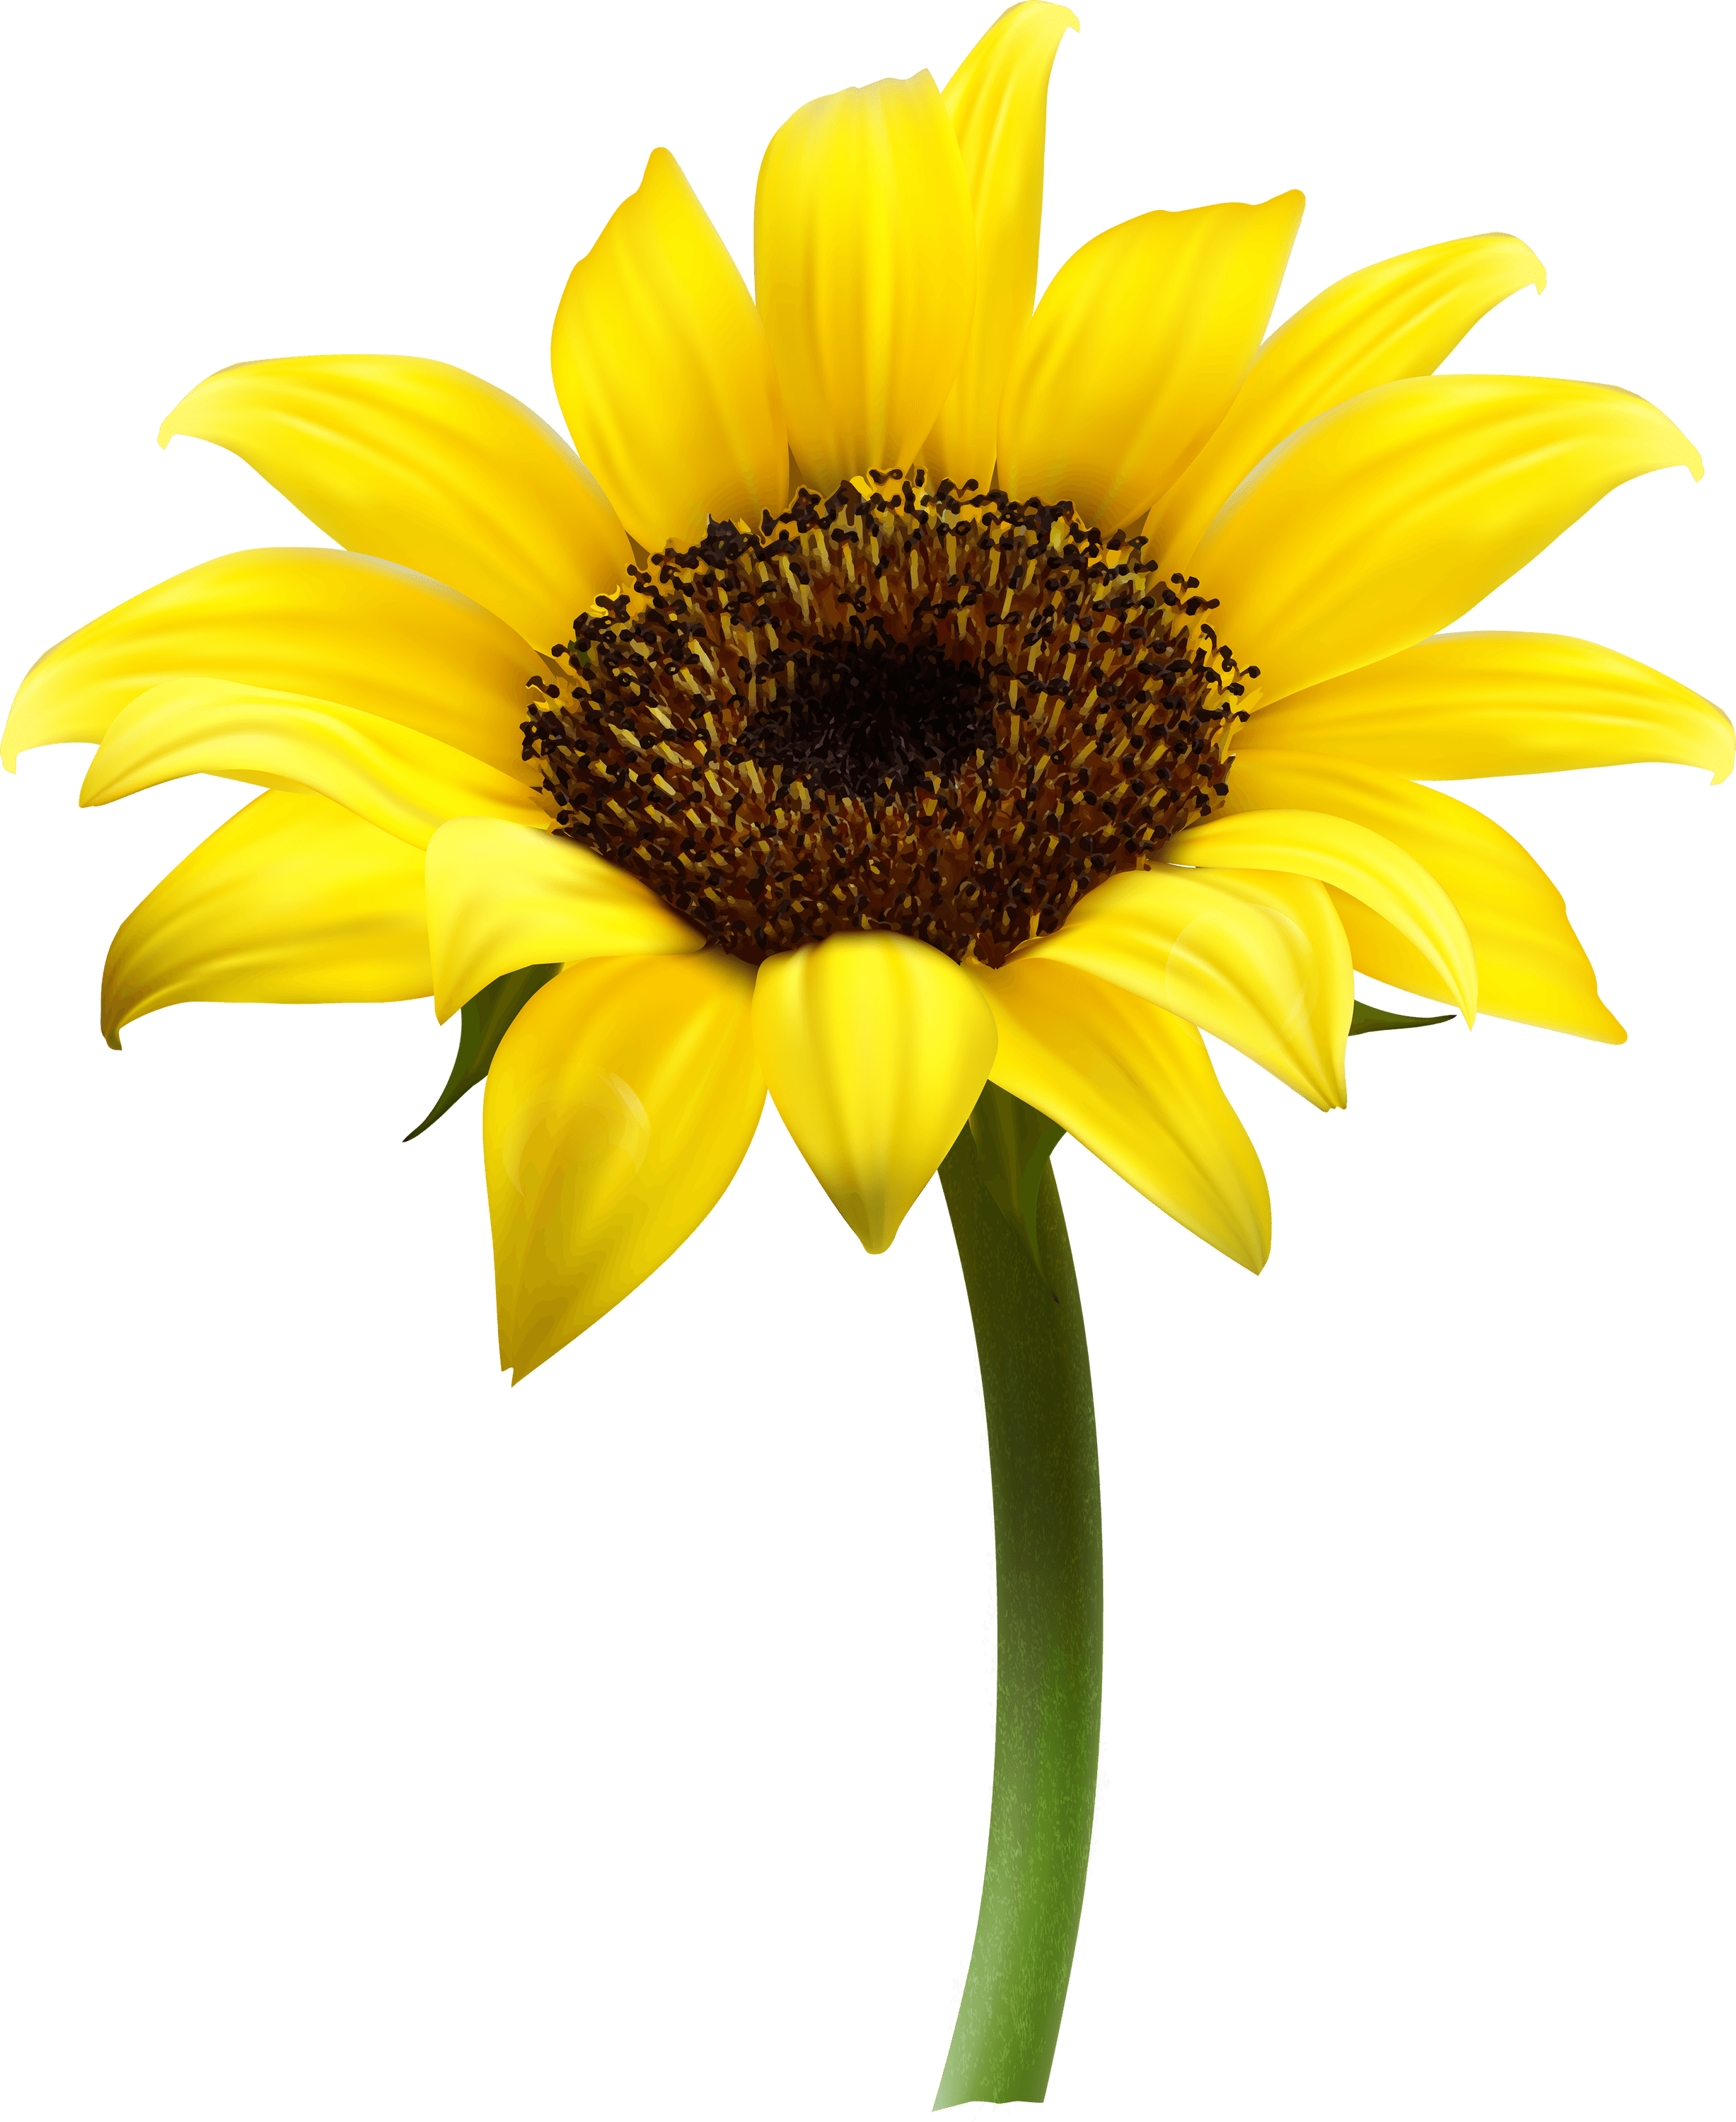 Sunflower clipart single sunflower. Transparent png stickpng